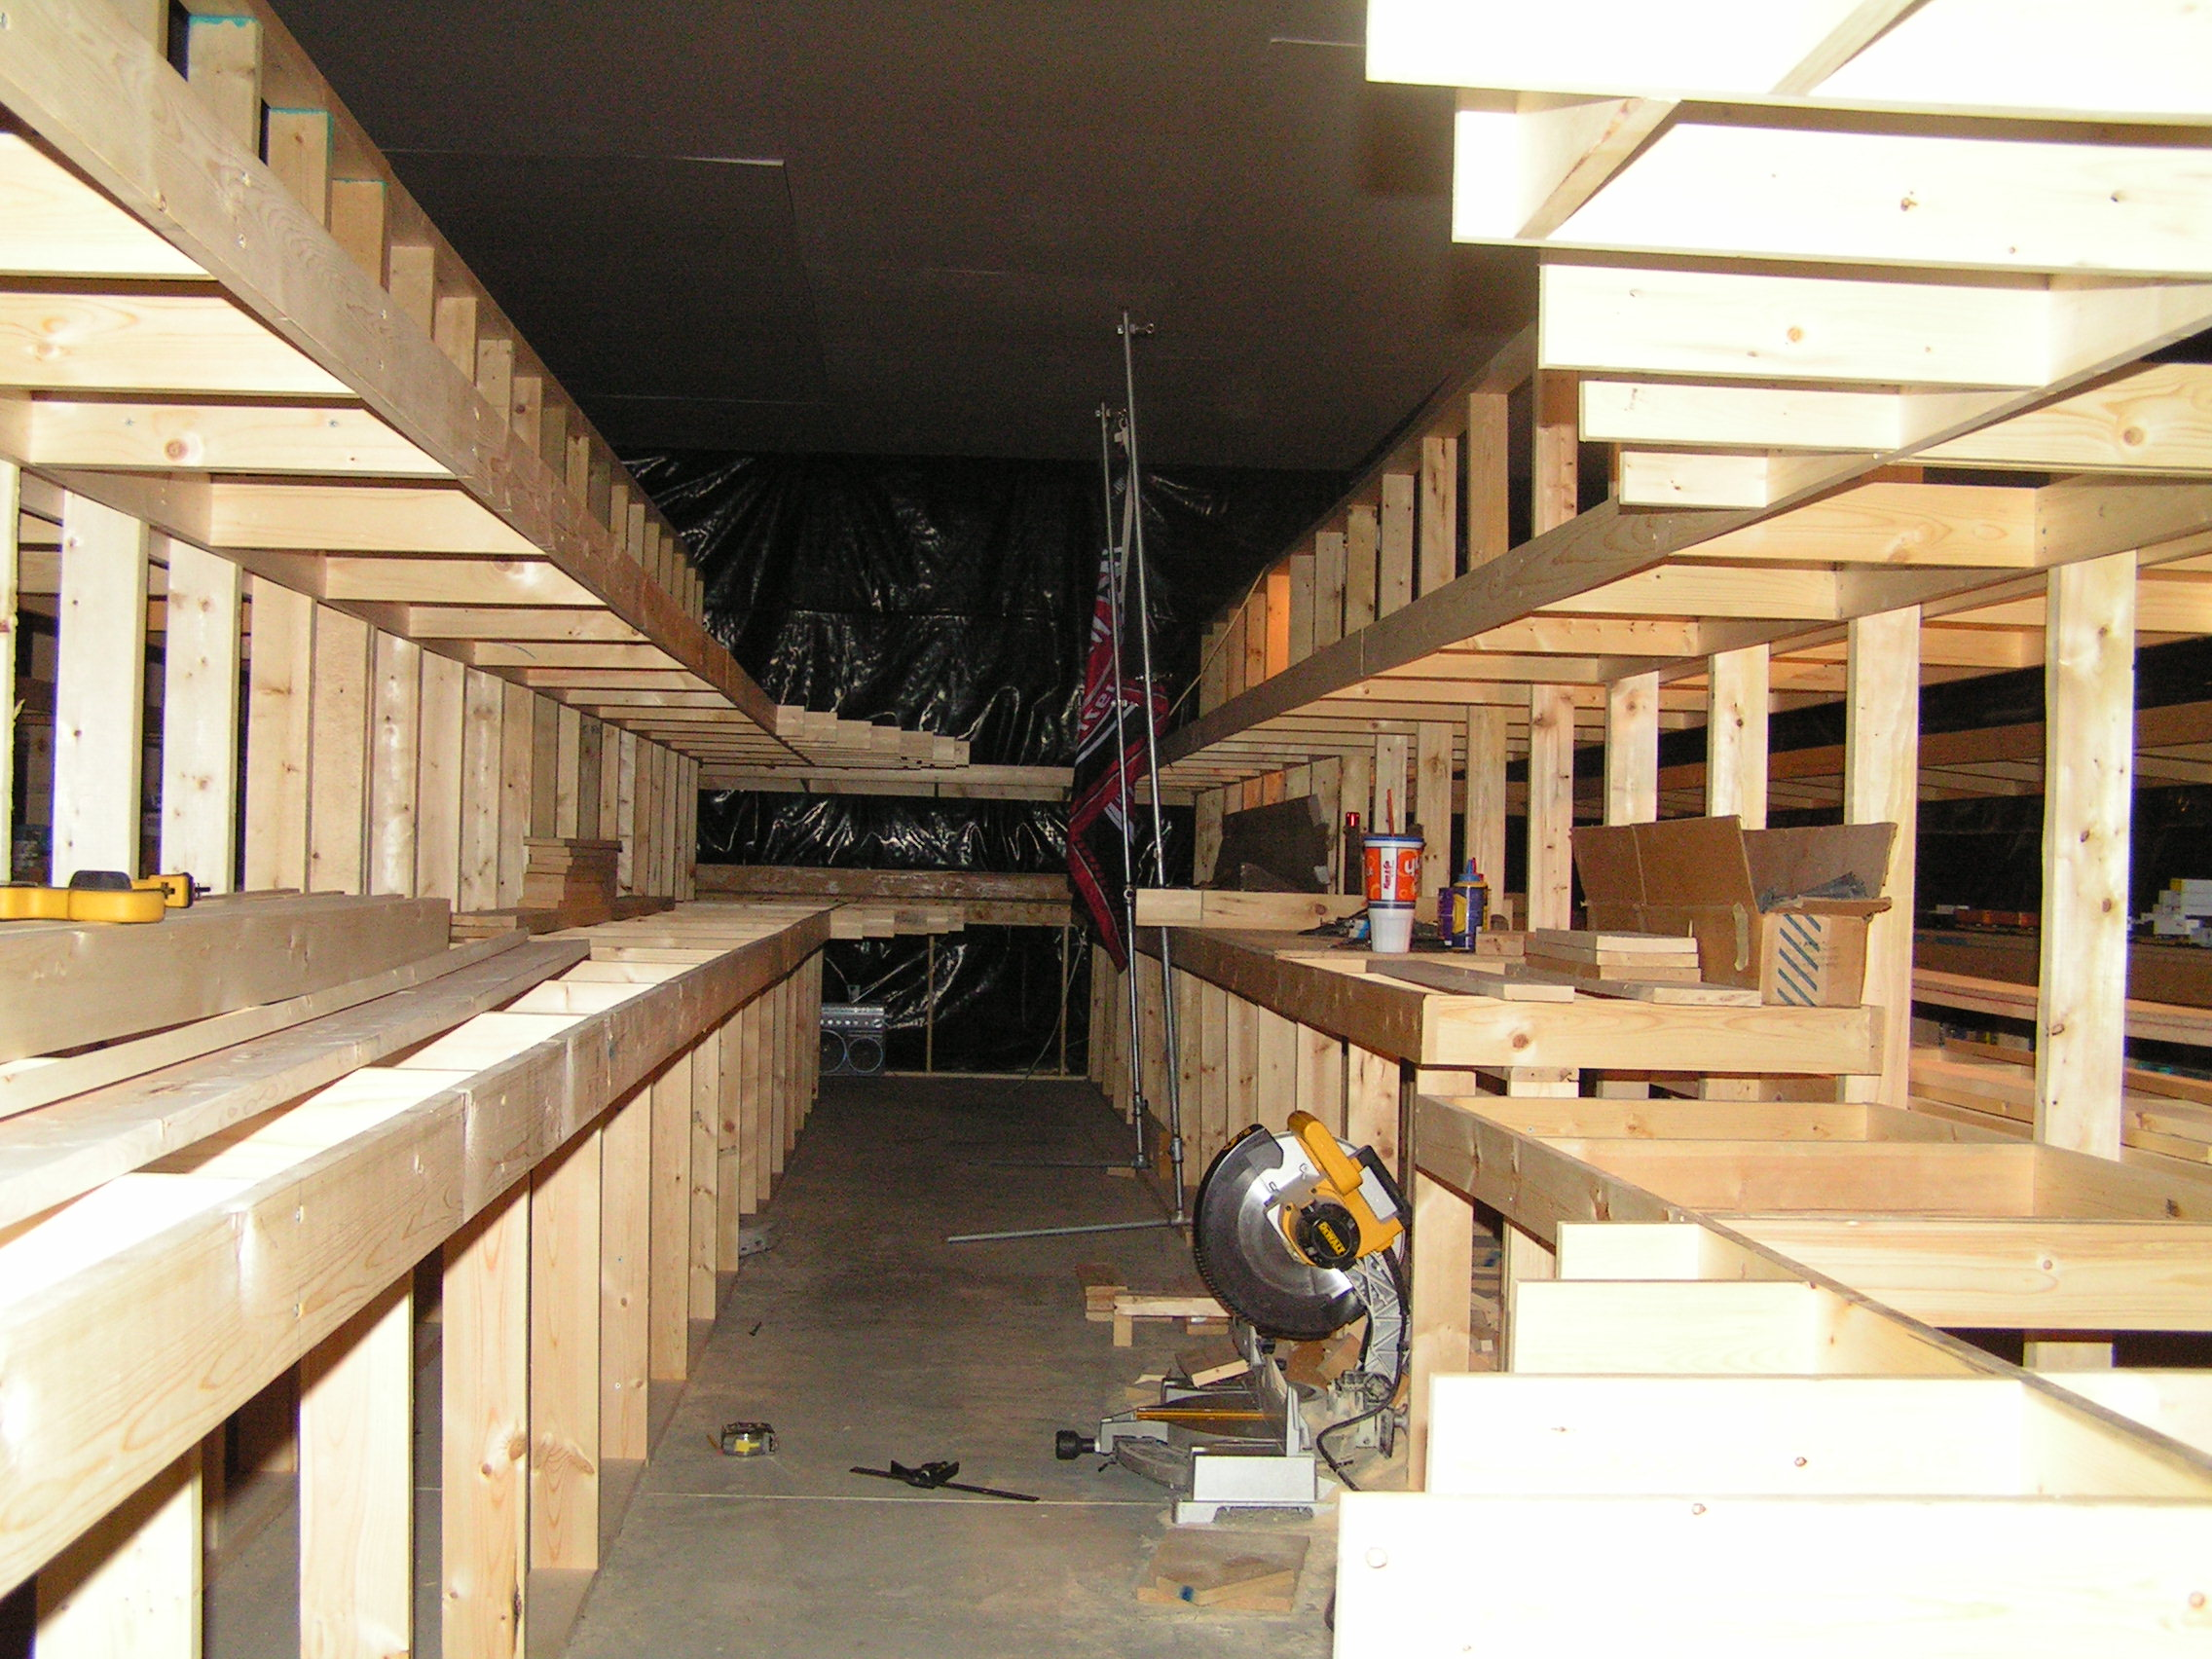 Snap shot of the benchwork under construction.